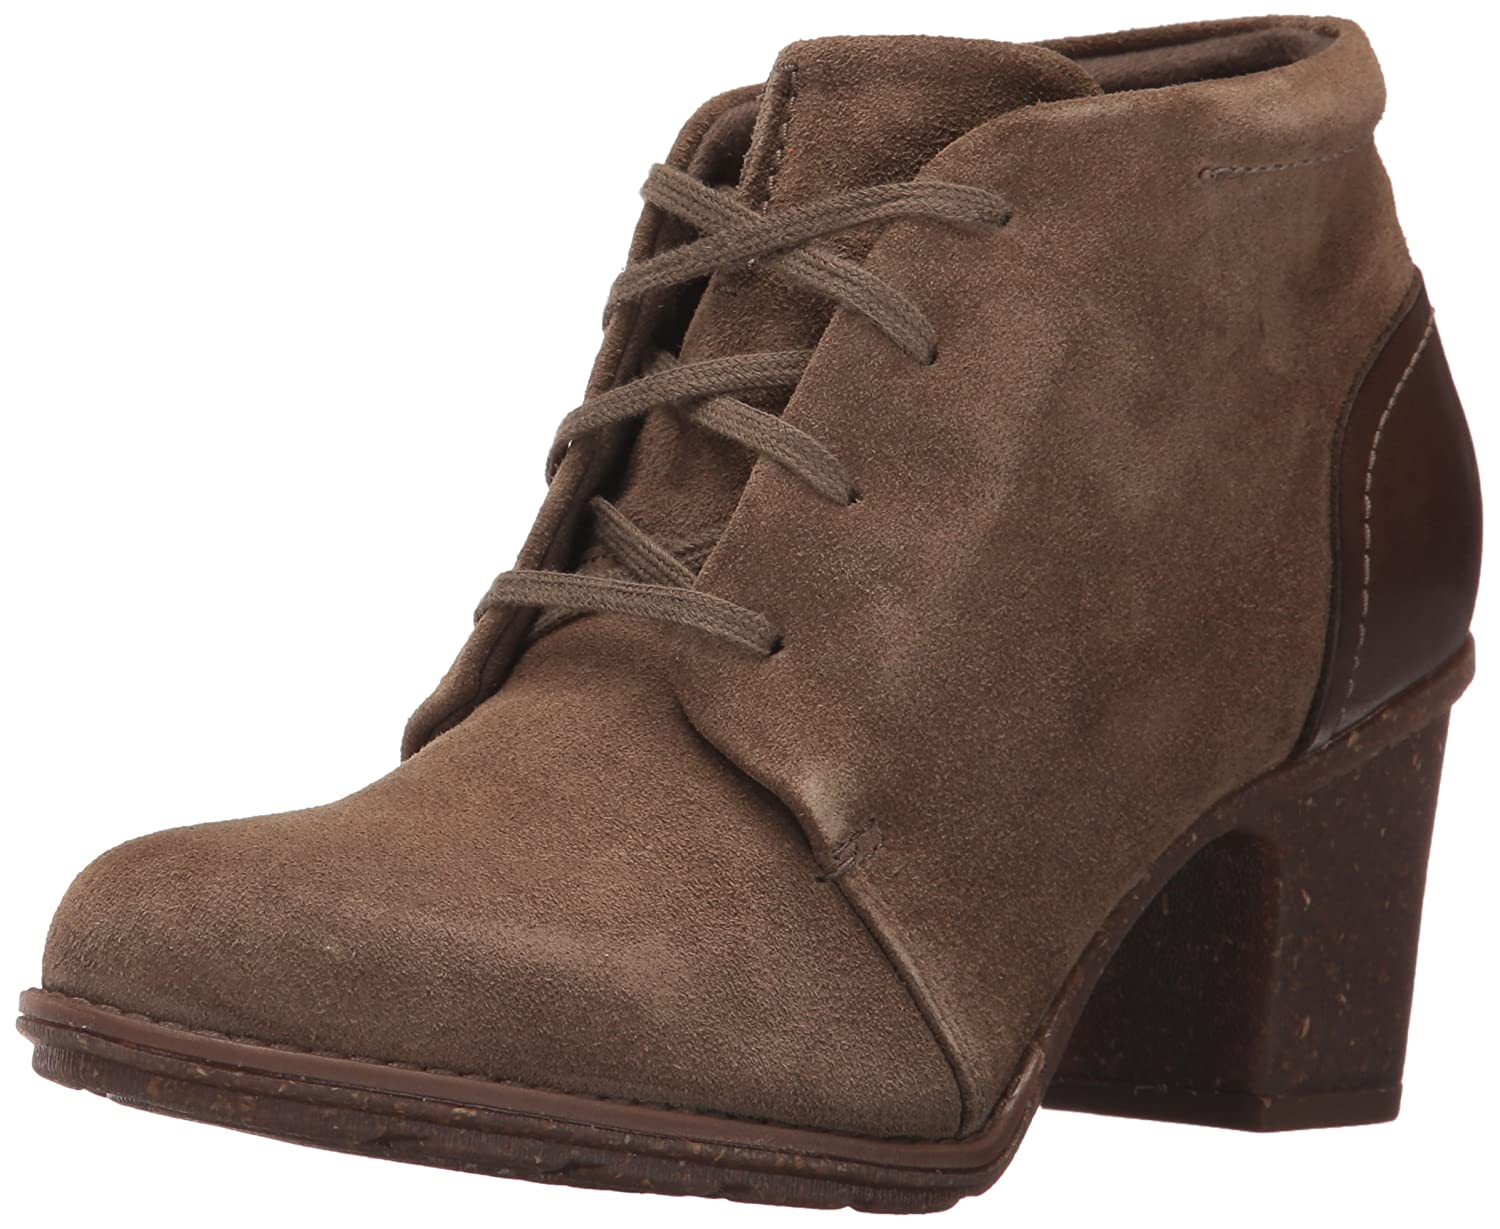 CLARKS Women's Sashlin Sue Ankle Bootie B01NCQYWI4 9 B(M) US|Olive